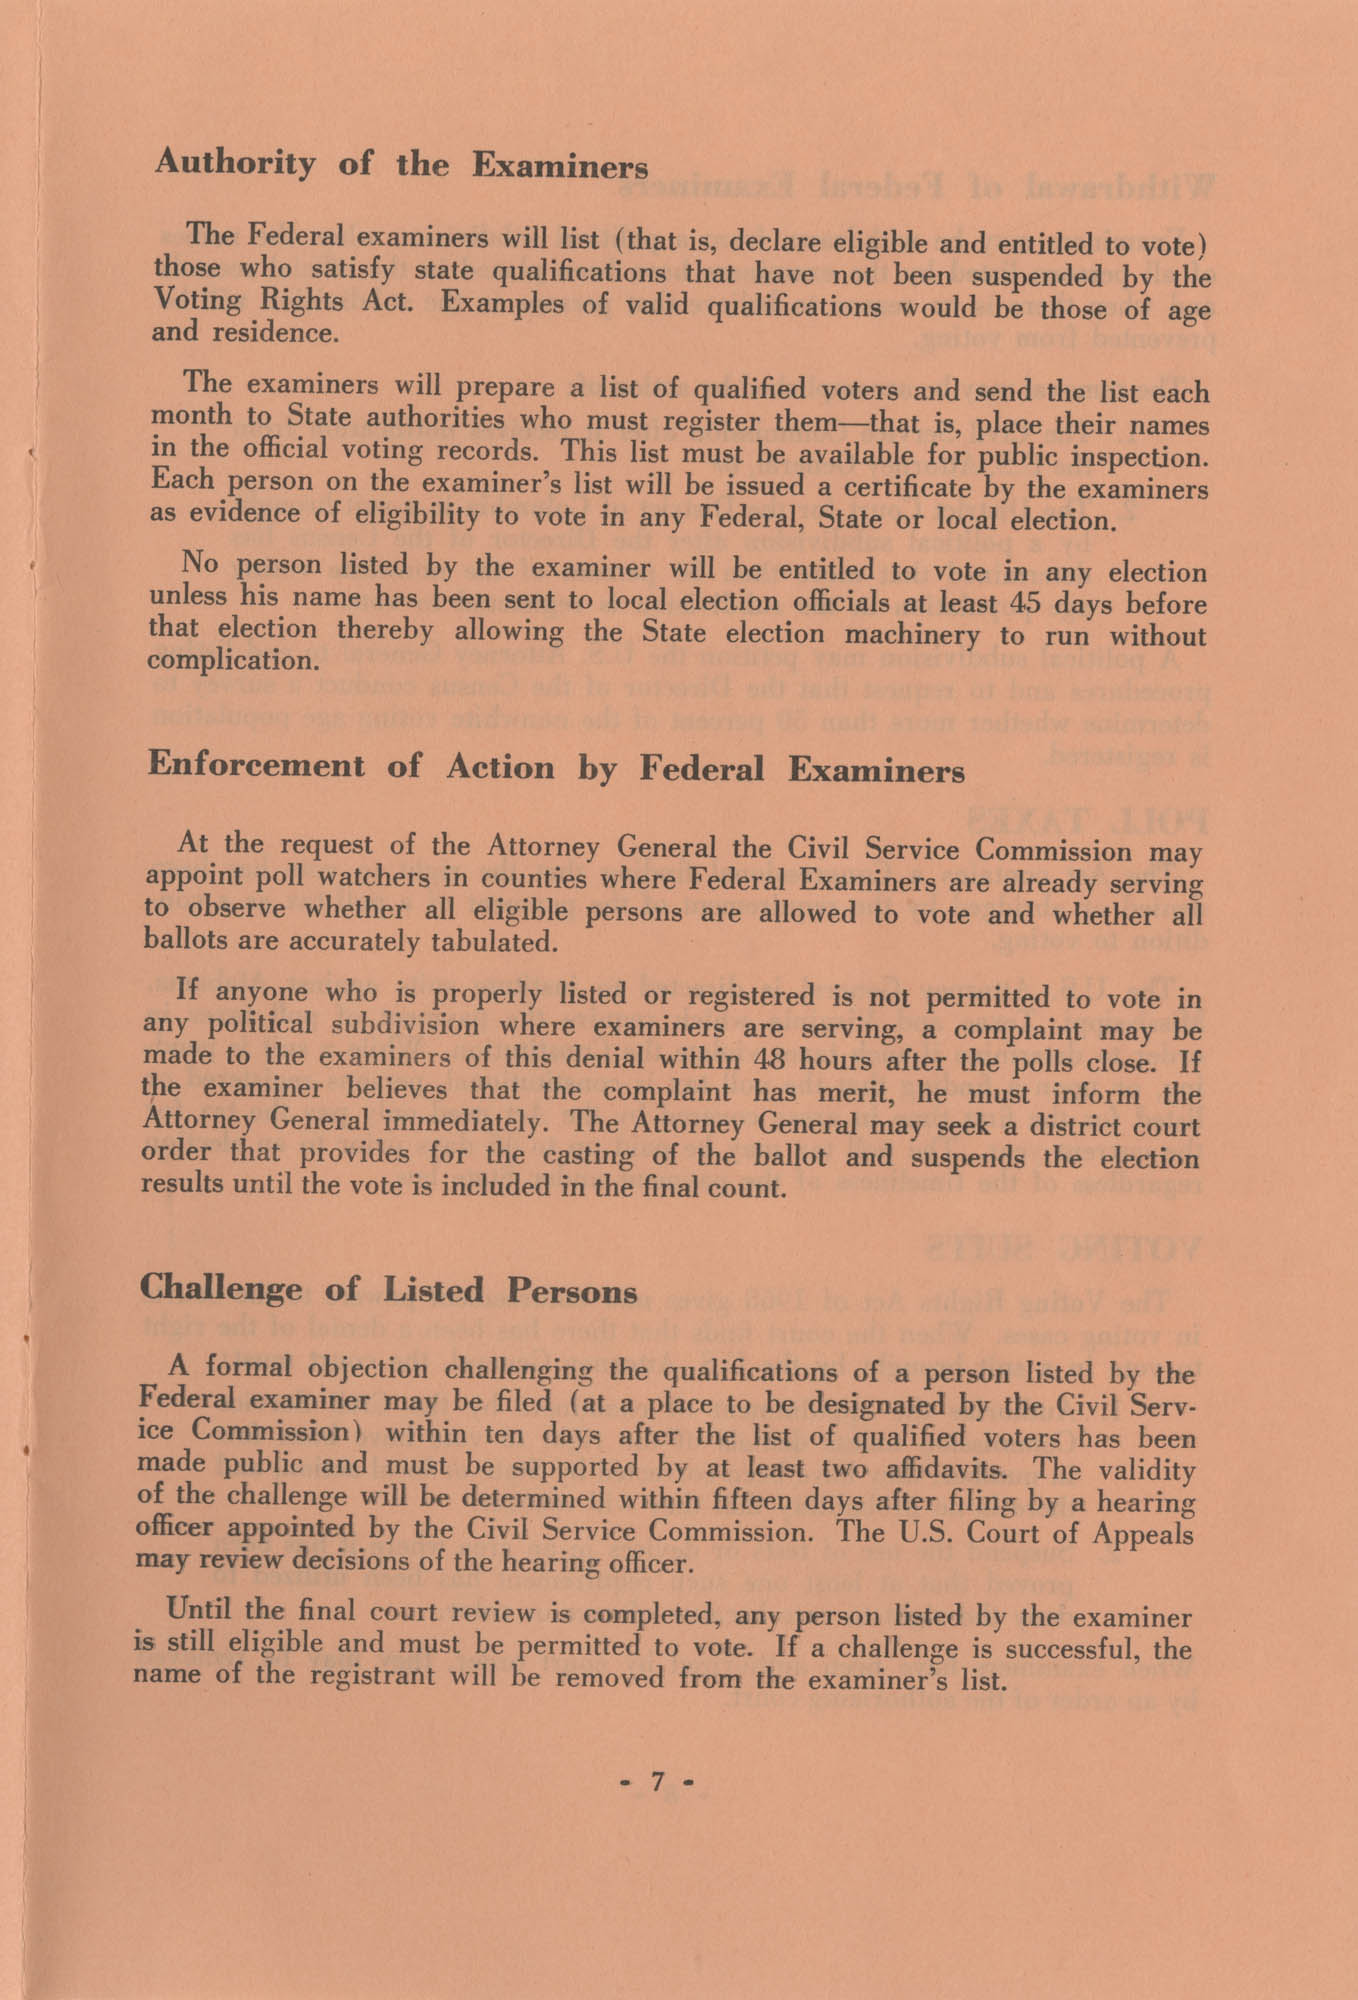 The Voting Rights Act of 1965, Page 7